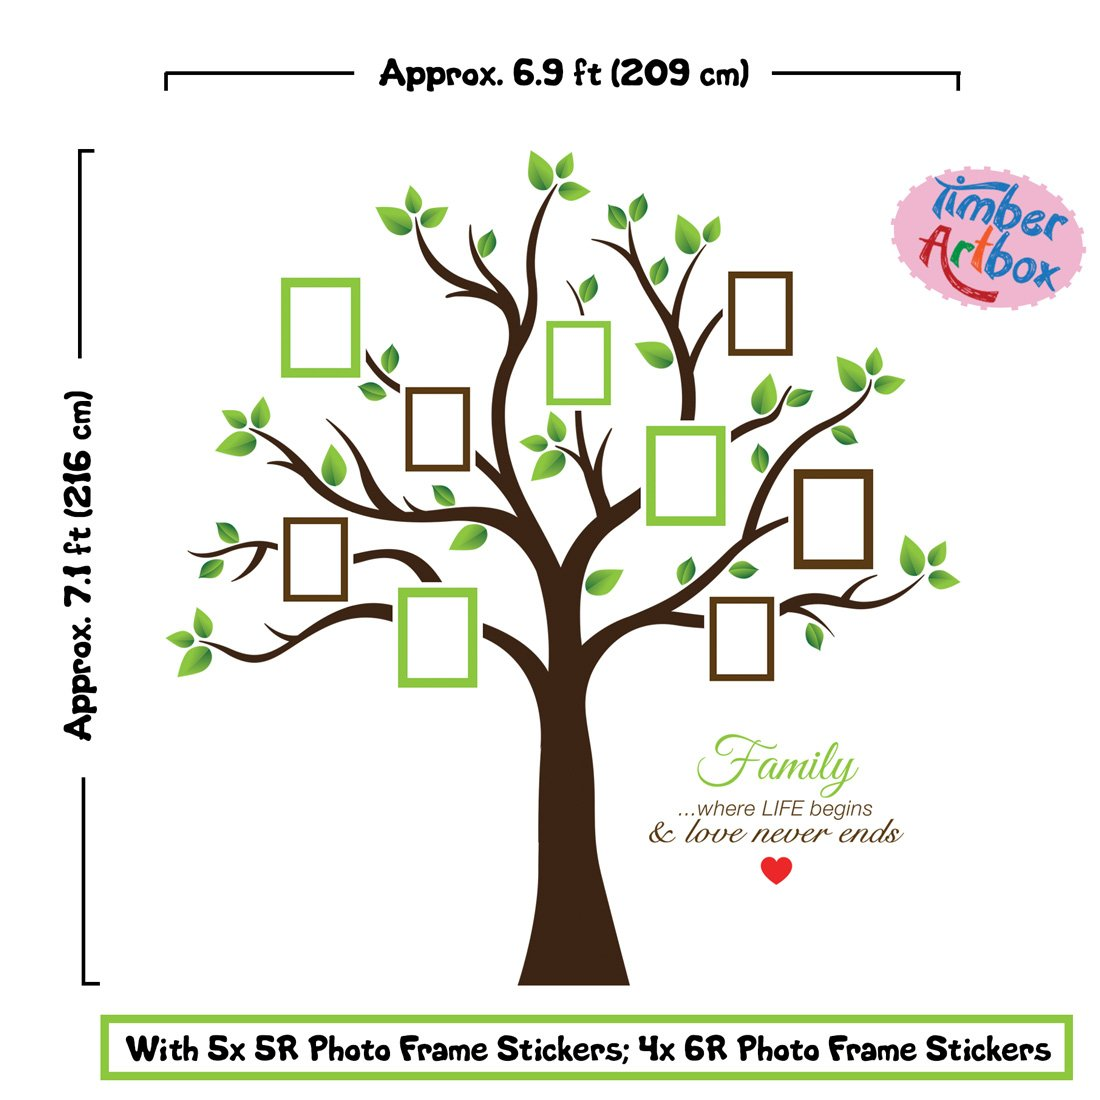 Buy Timber Artbox Large Family Tree Photo Frames Wall Decal - The ...